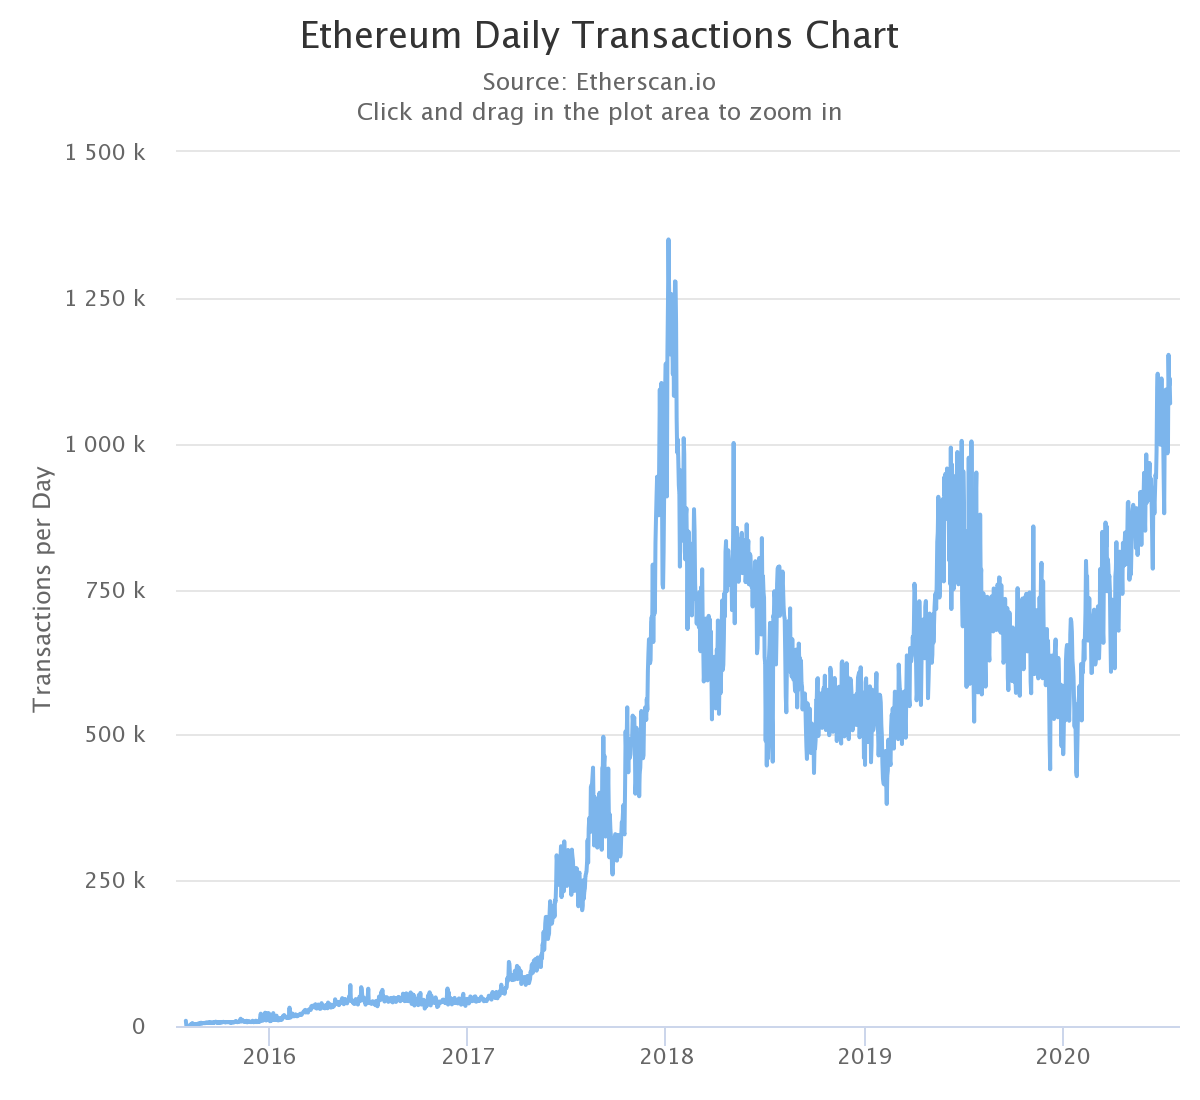 Ethereum daily transactions chart. Source: Etherscan